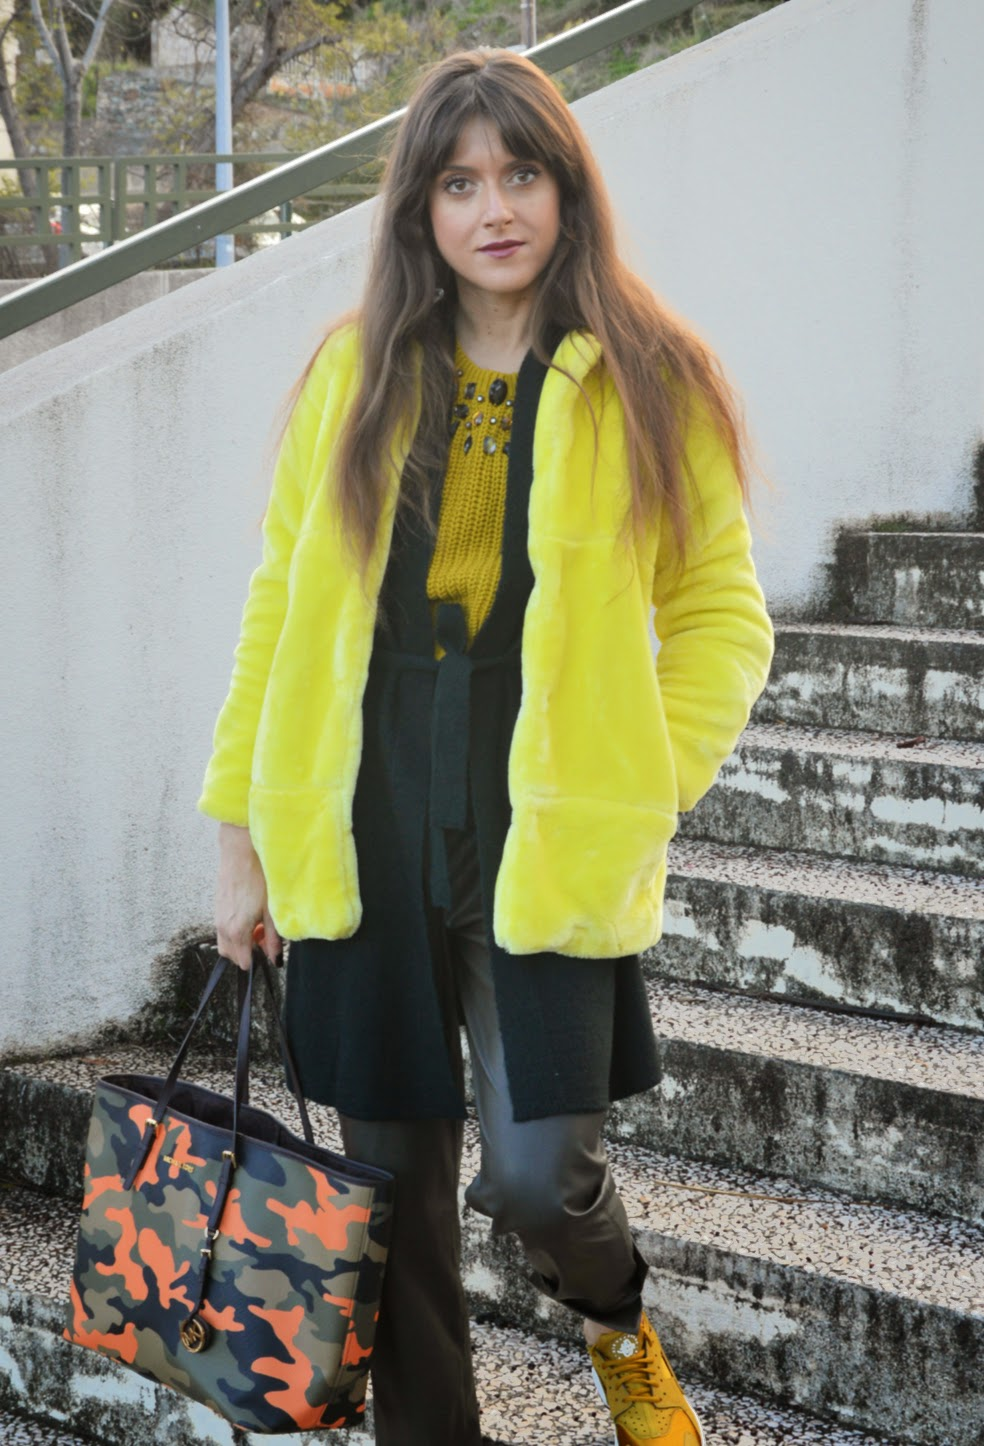 d6ee536e0f47f I deliberately didn t make formal presentations and for good reason as  you ve seen this faux fur chick yellow jacket at work more than once on  Instagram!  )